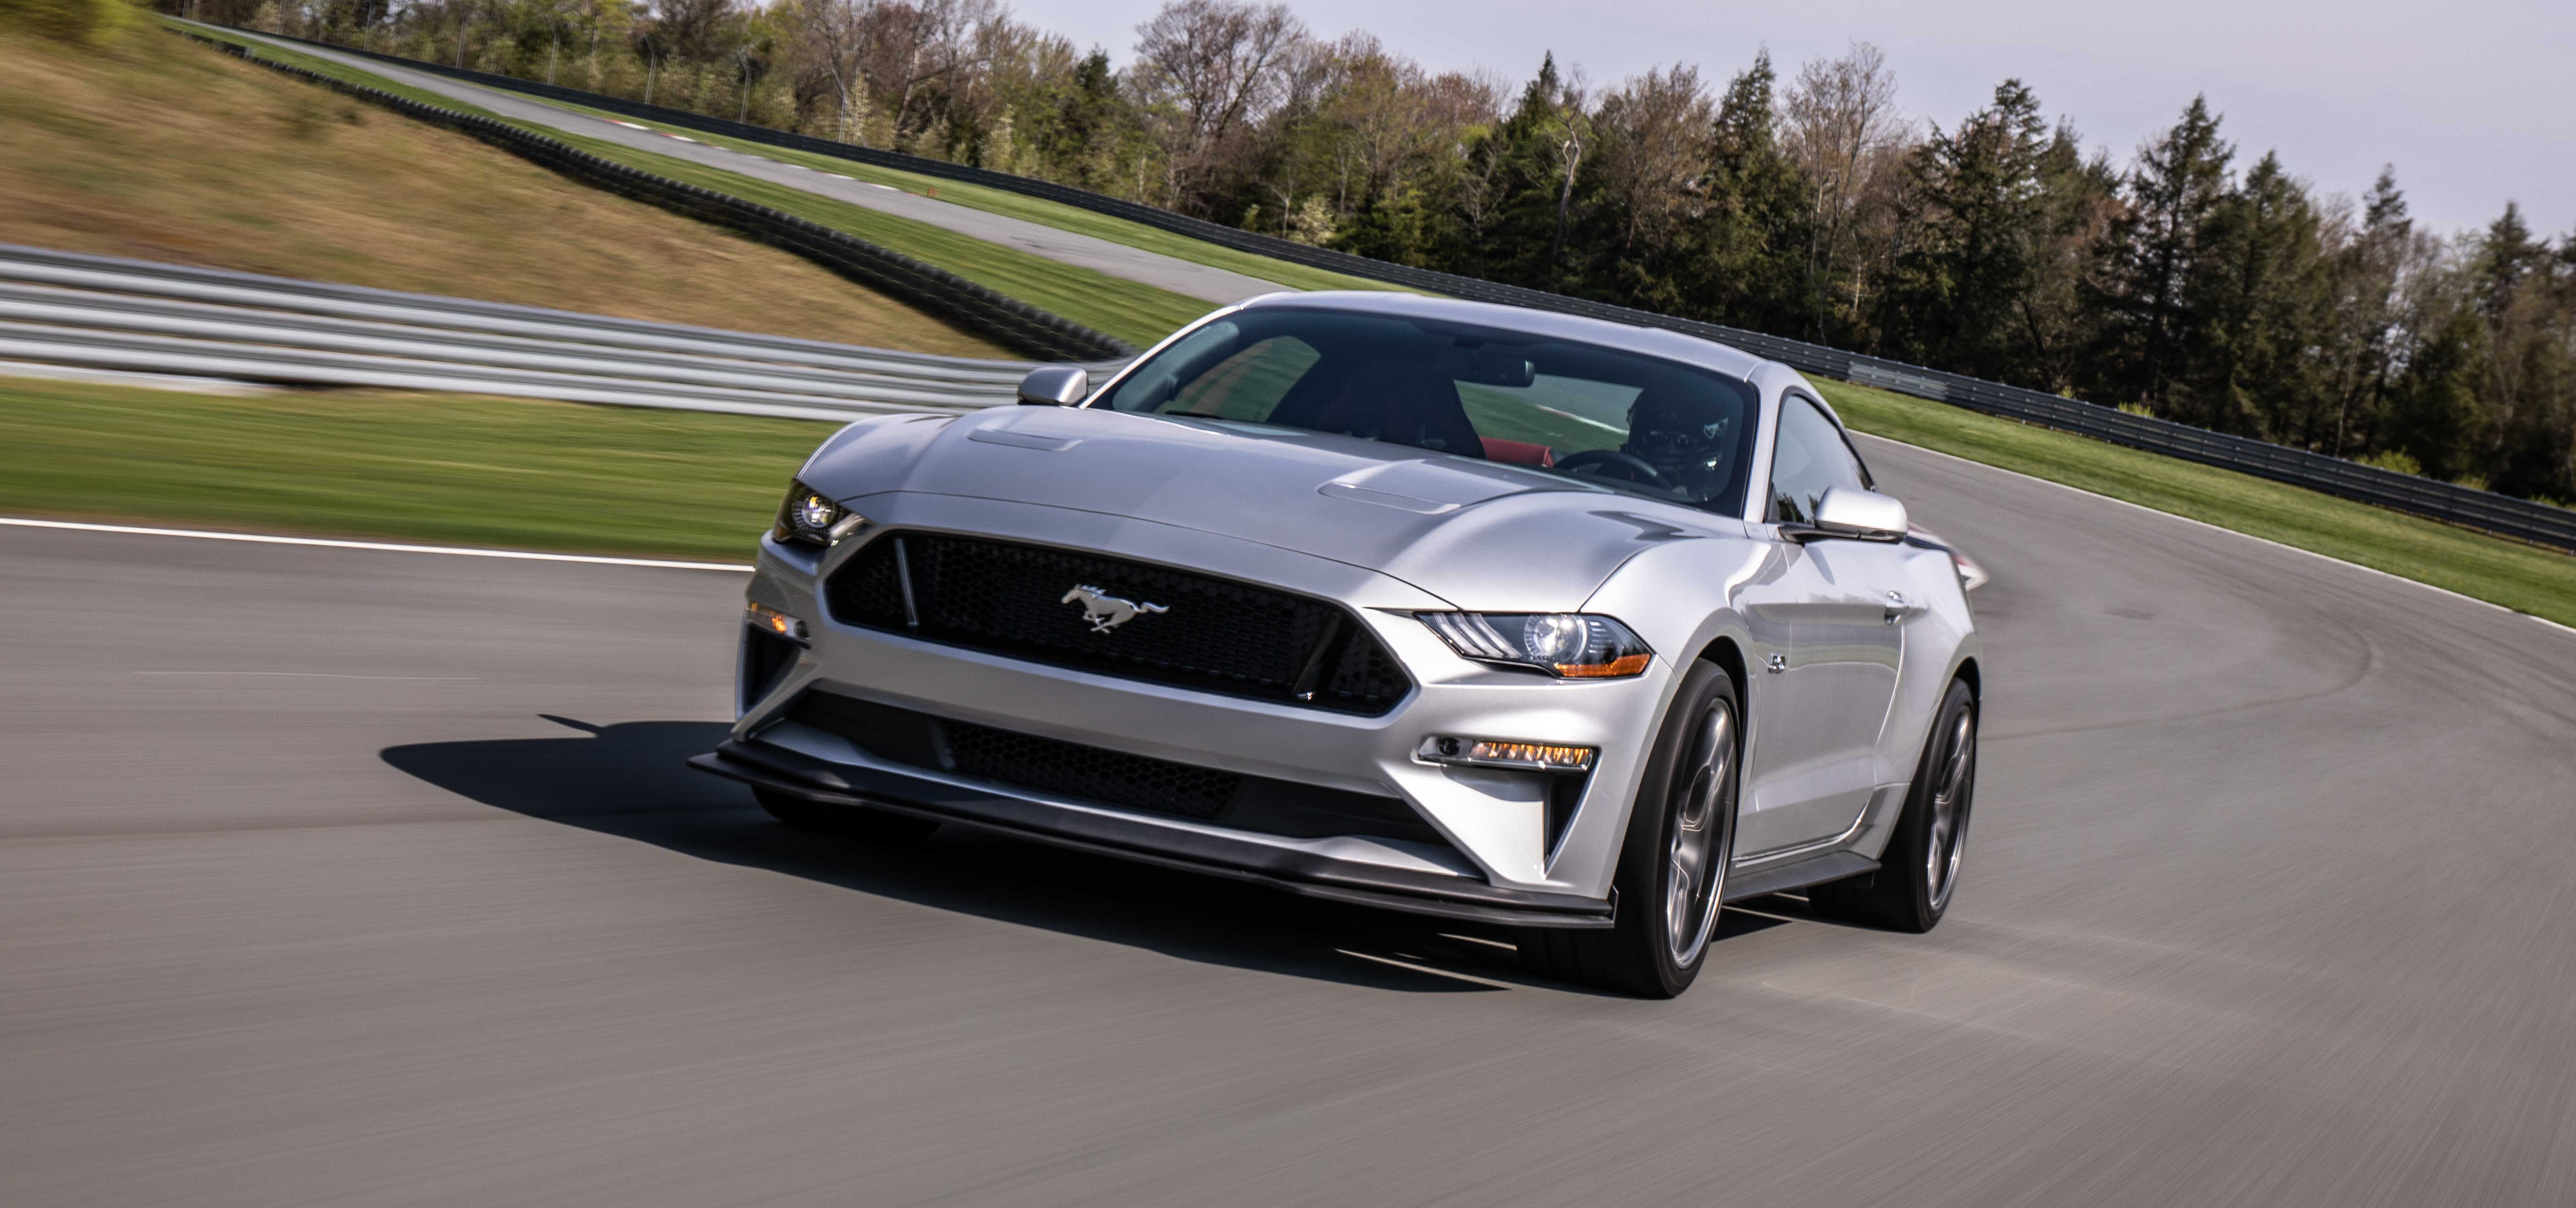 2018 Ford Mustang GT Performance Pack 2 On drack Driver's front